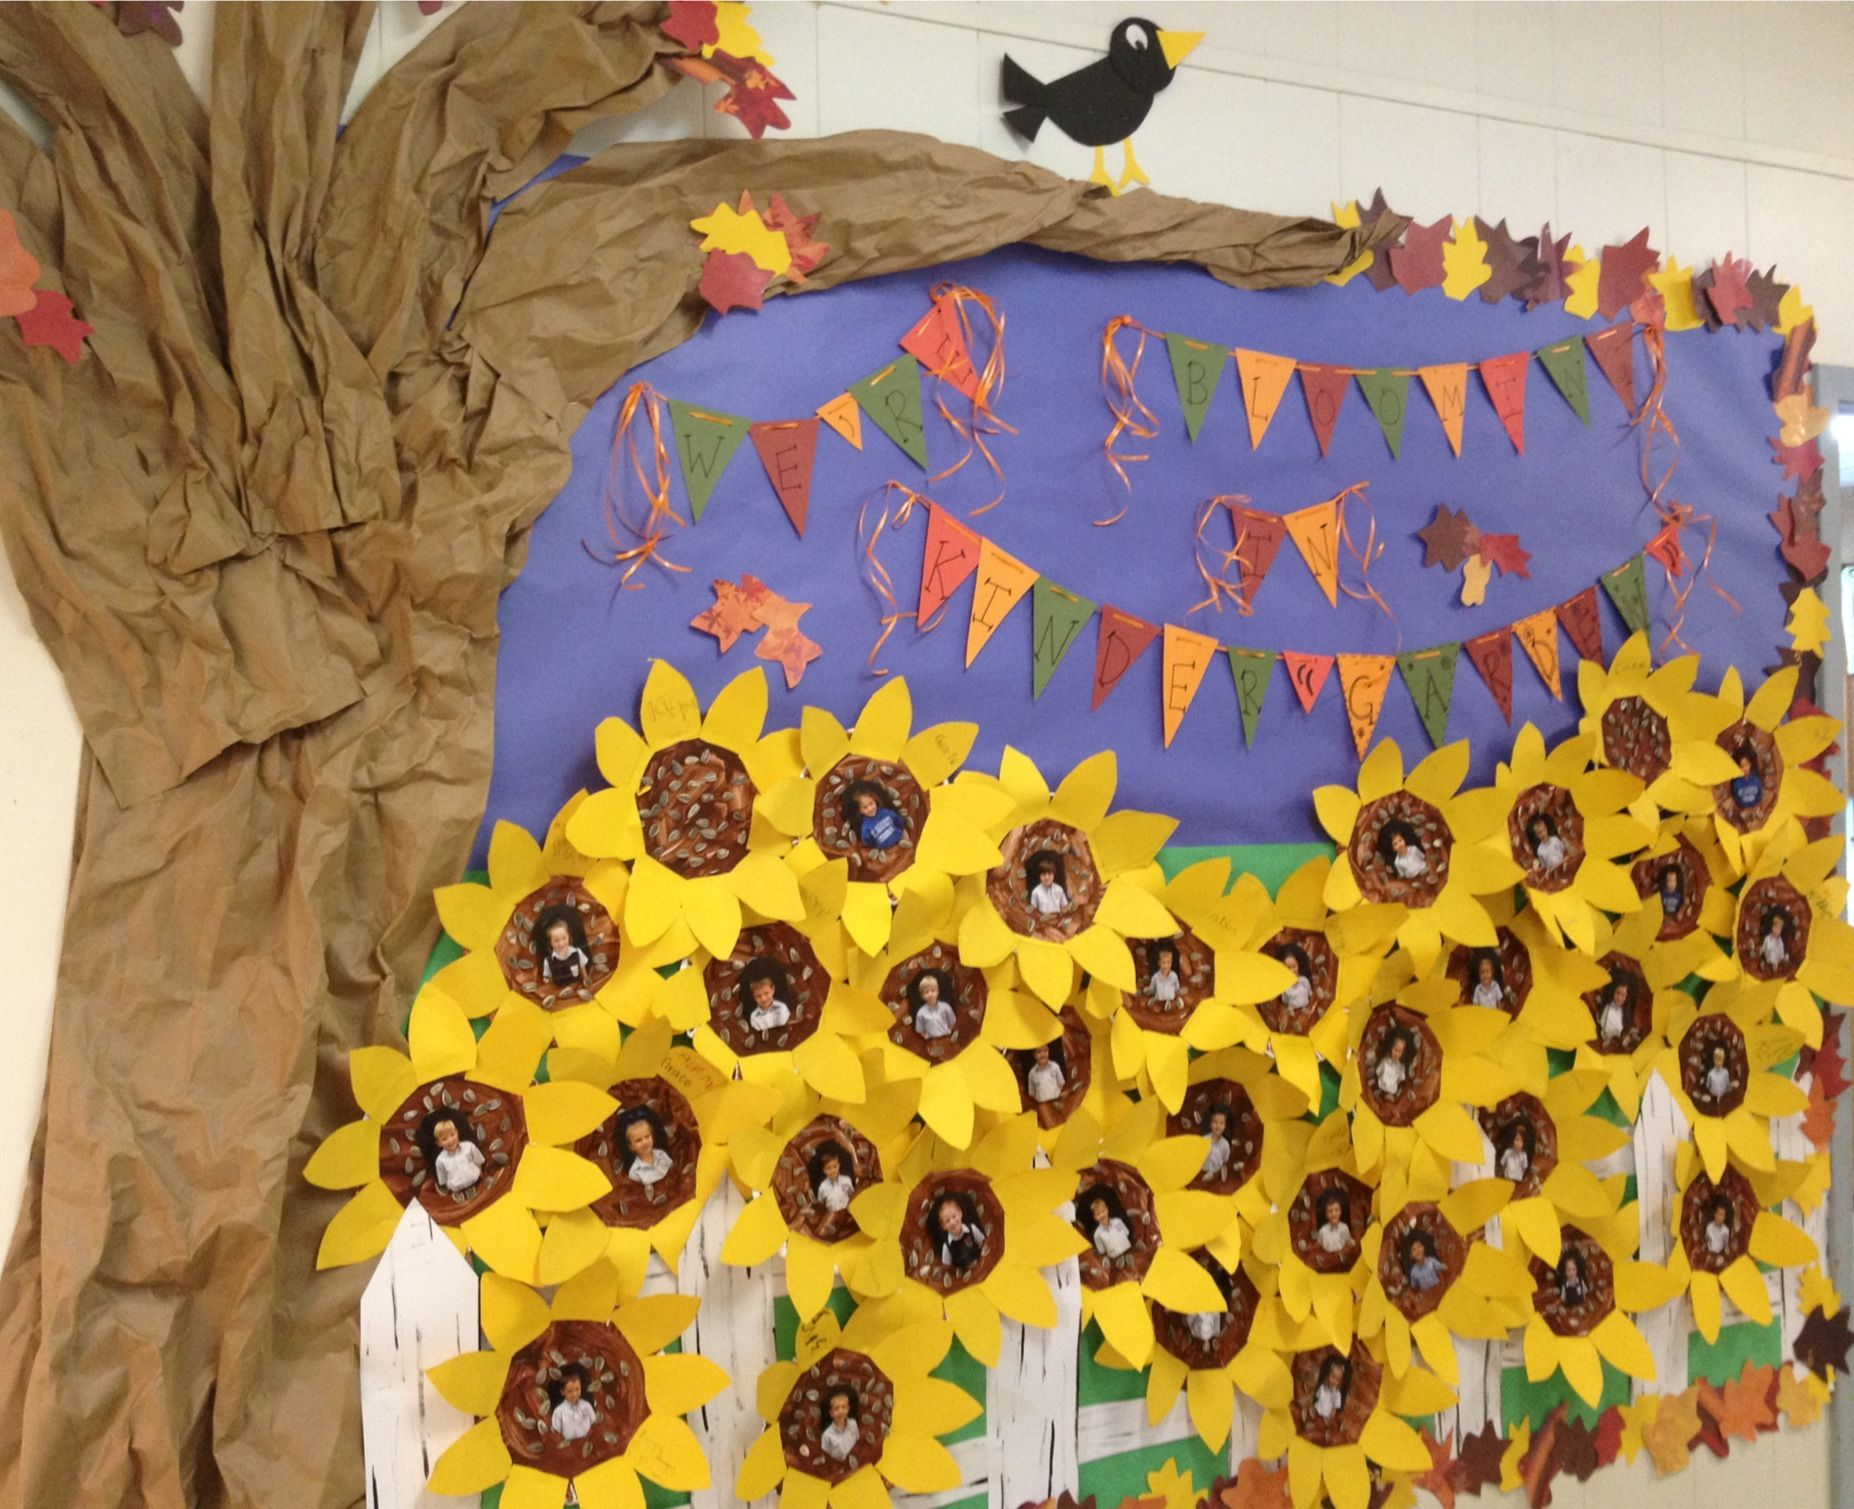 We Re Blooming In Kinder Garden Fun Bulletin Board Idea Fall Themed With Sunflowers